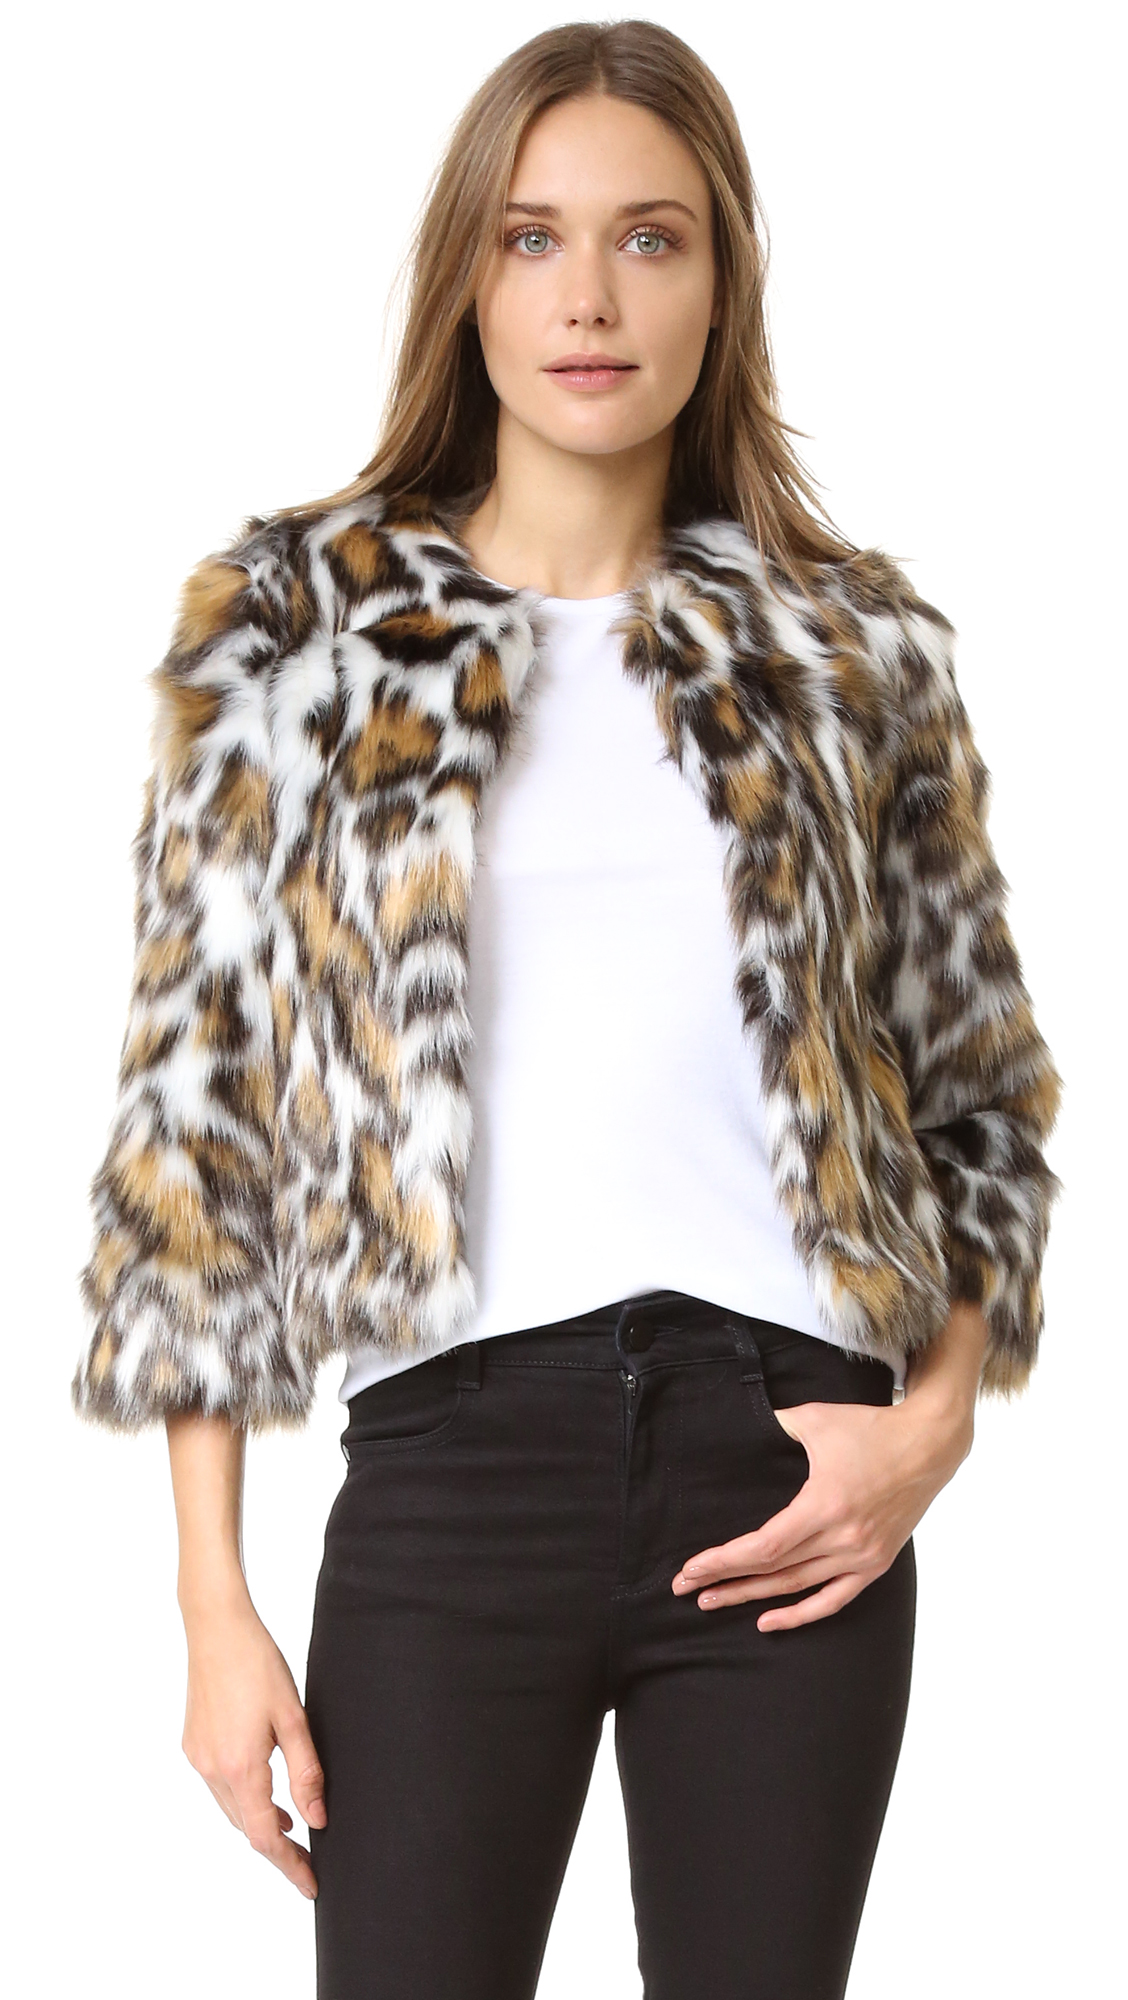 Leopard print faux fur turns this cropped Moschino jacket into a vivid statement piece. Hook and eye closures. Long sleeves. Lined. Fabric: Faux fur. 65% acrylic/35% polyester. Dry clean. Made in Italy. Measurements Length: 18.5in / 47cm, from